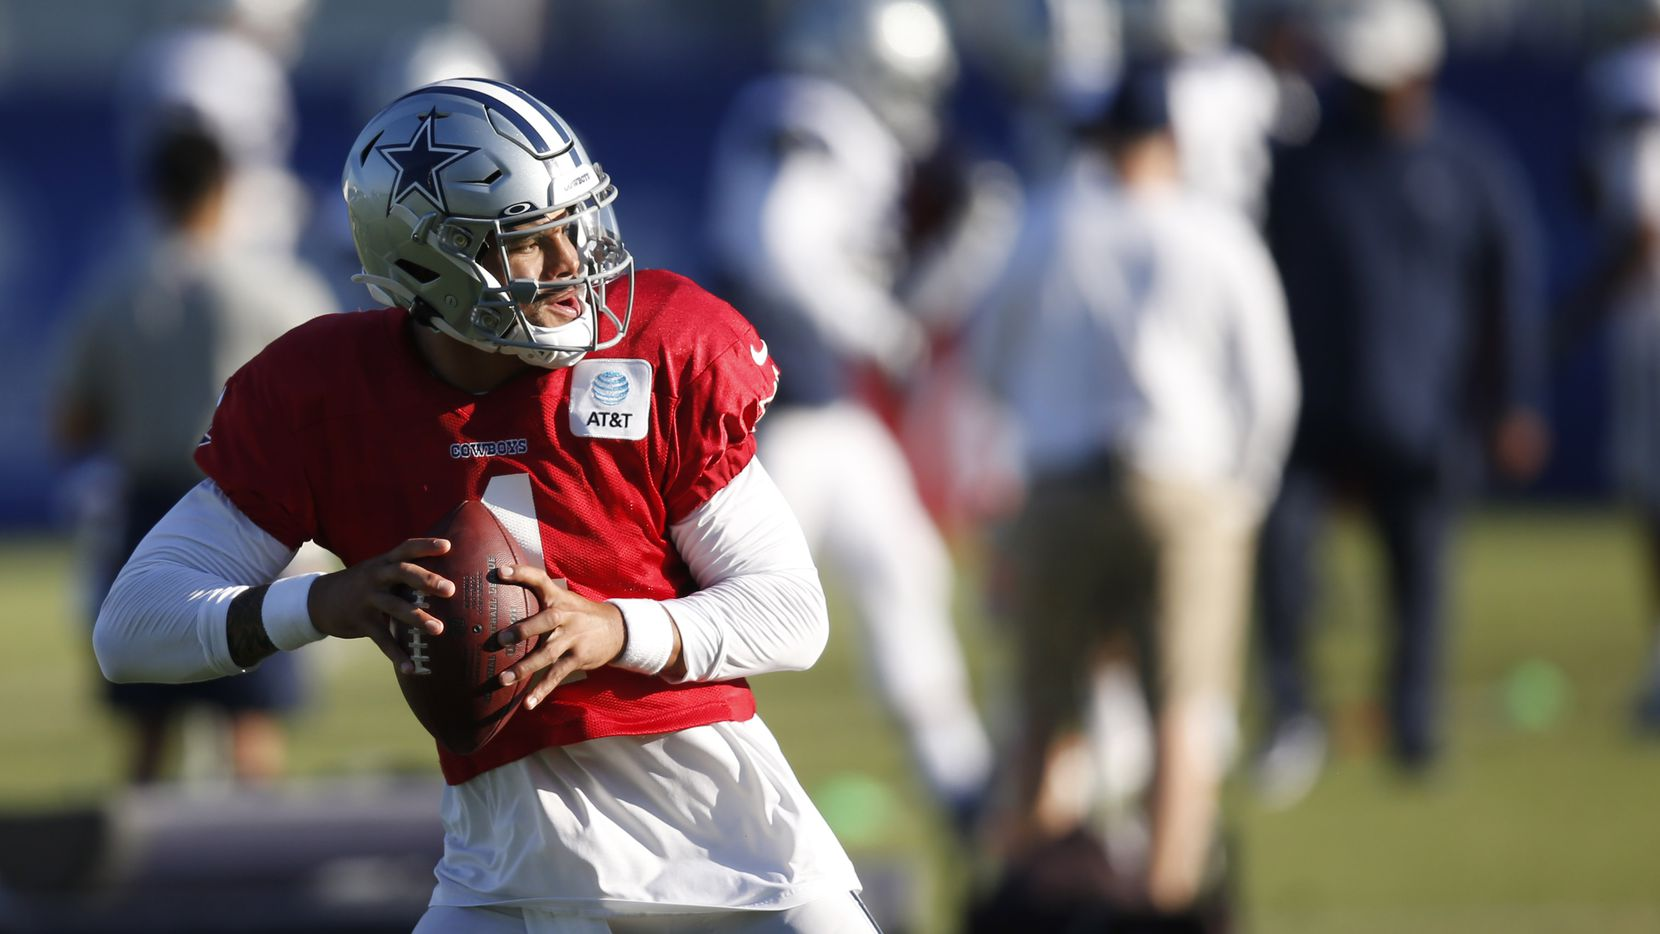 Dallas Cowboys quarterback Dak Prescott (4) runs through a drill during training camp at the Dallas Cowboys headquarters at The Star in Frisco, Texas on Thursday, August 20, 2020. (Vernon Bryant/The Dallas Morning News)